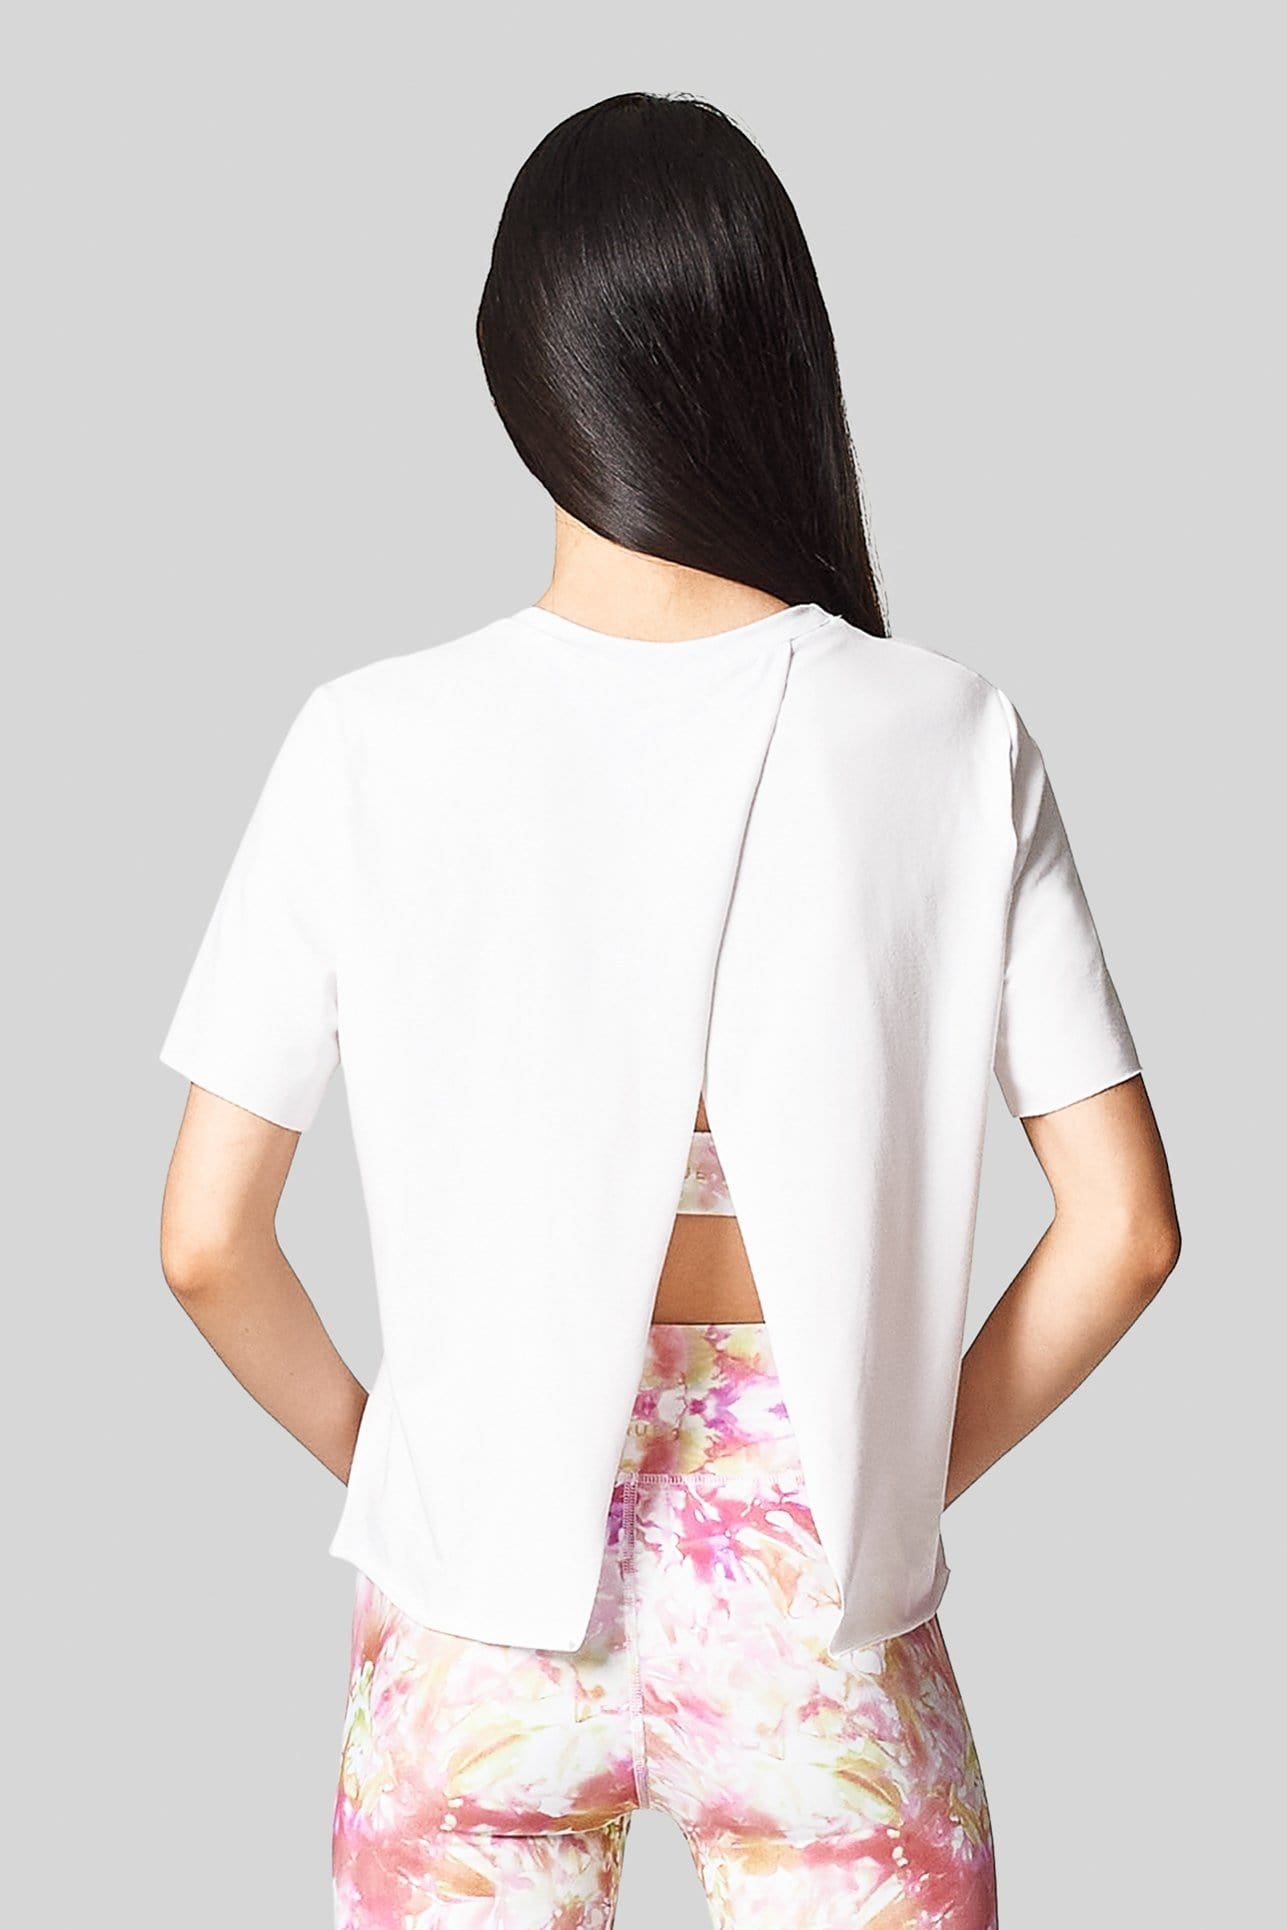 The back view of a woman wearing a white open back short sleeve tee-shirt with neon tie-dye leggings.